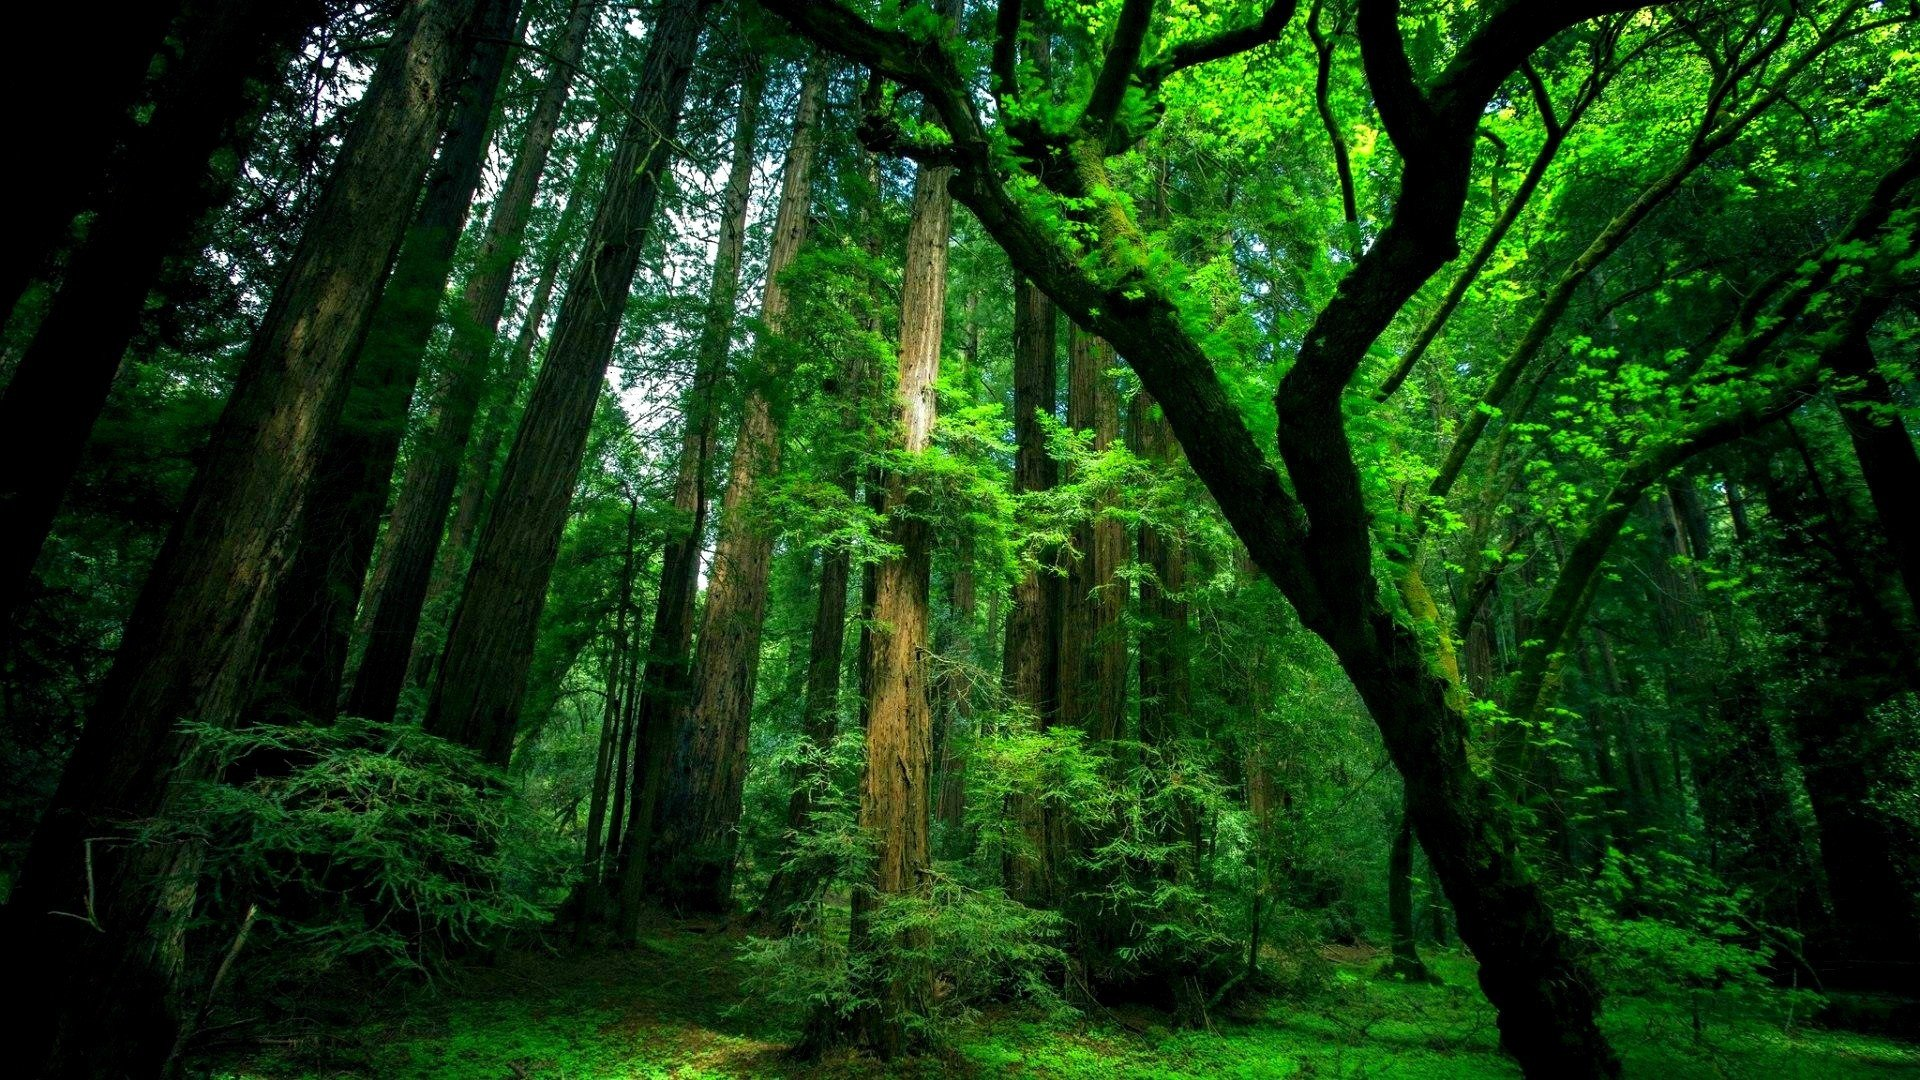 Green Forest Background Photo Wallpaper 00l4kah4 Yoanu 1920x1080